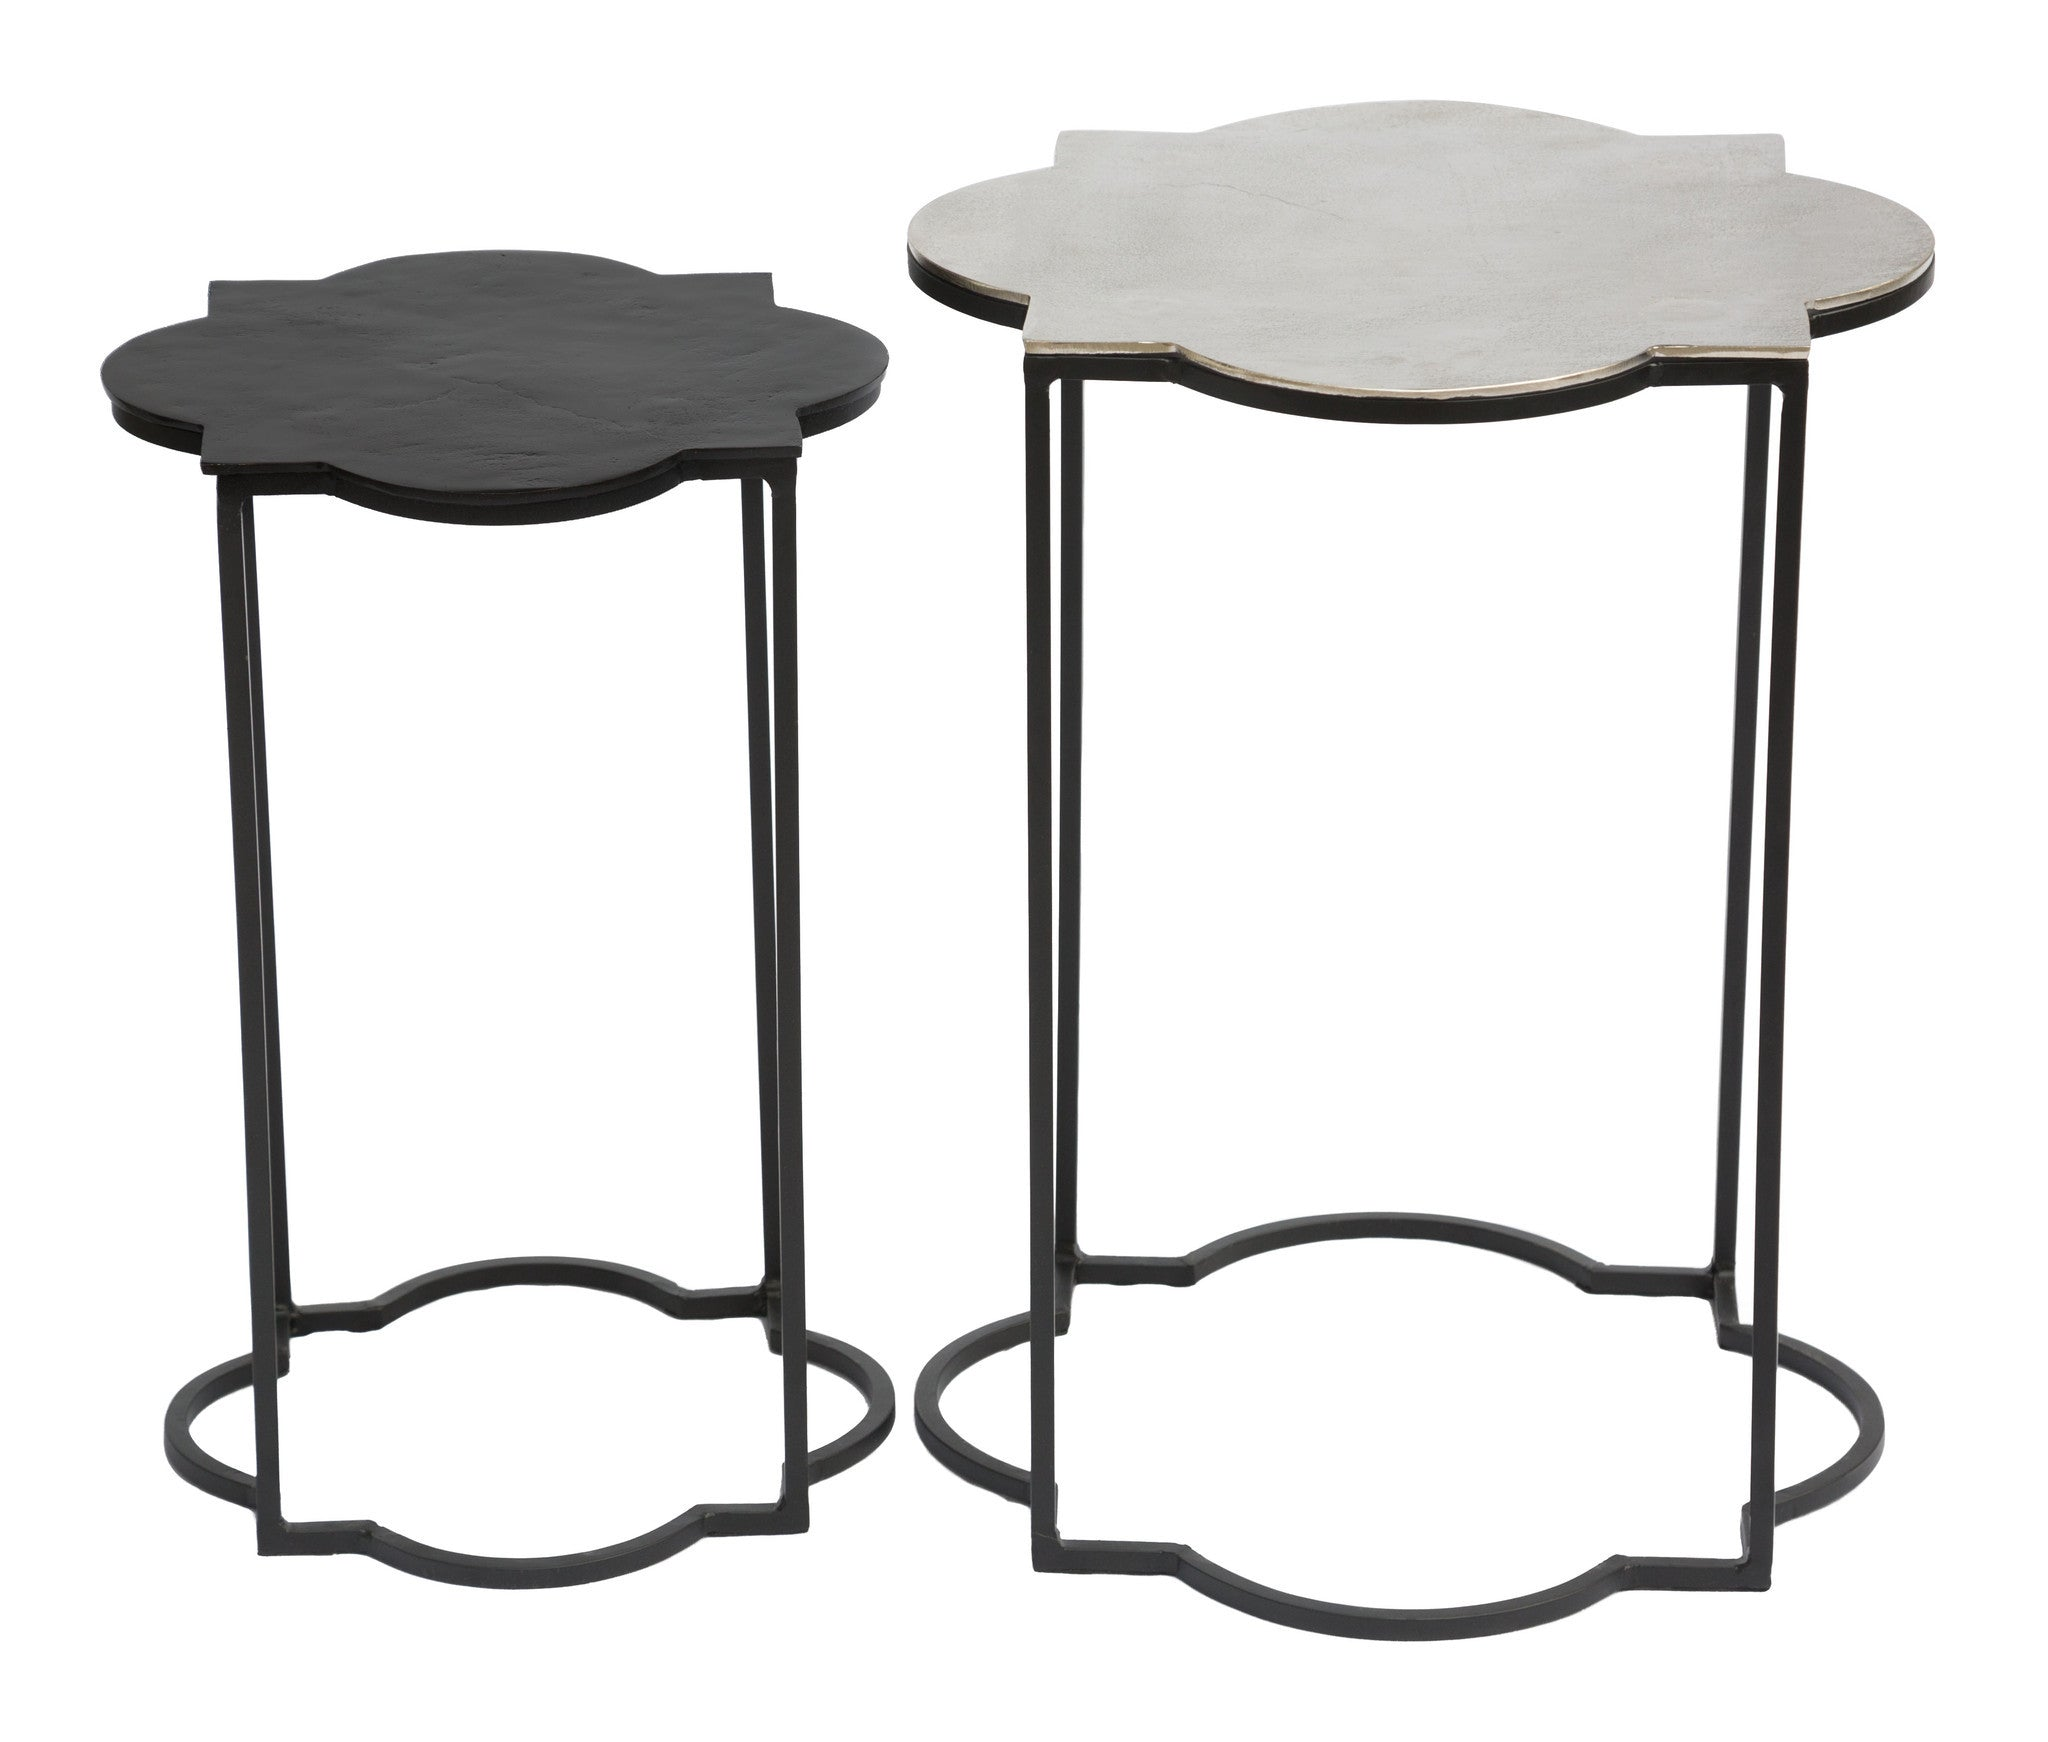 Slim round end table modern accent table with drawer calvin end table -  Brighton Accent Table Set In Black White Side Tables Alan Decor